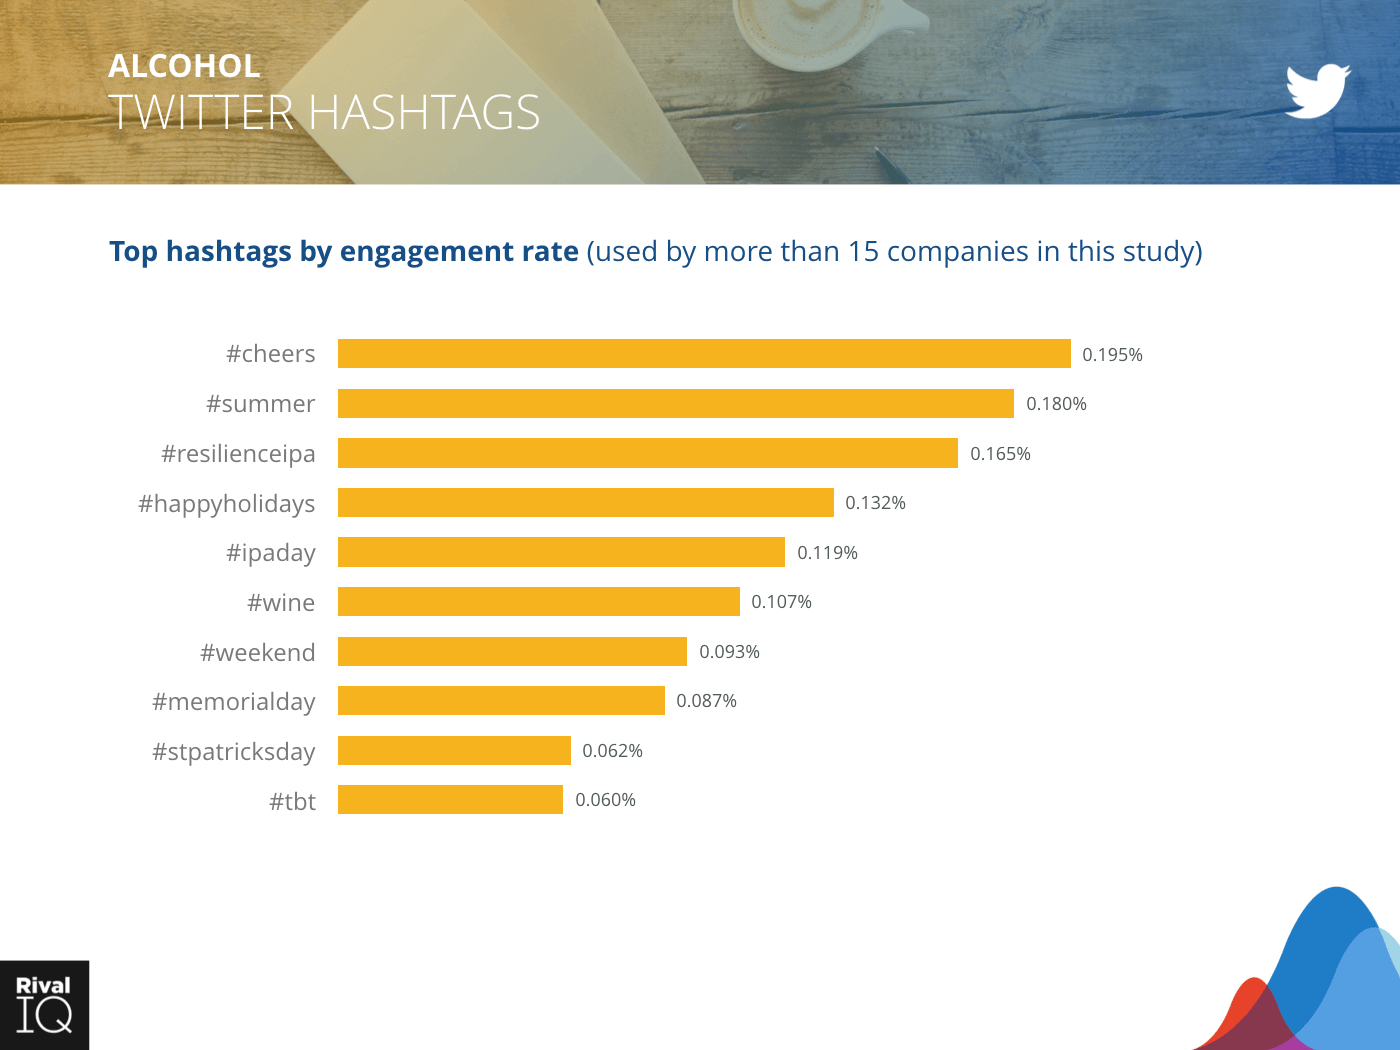 Alcohol Industry: bar graph, hashtags by engagement rate on Twitter